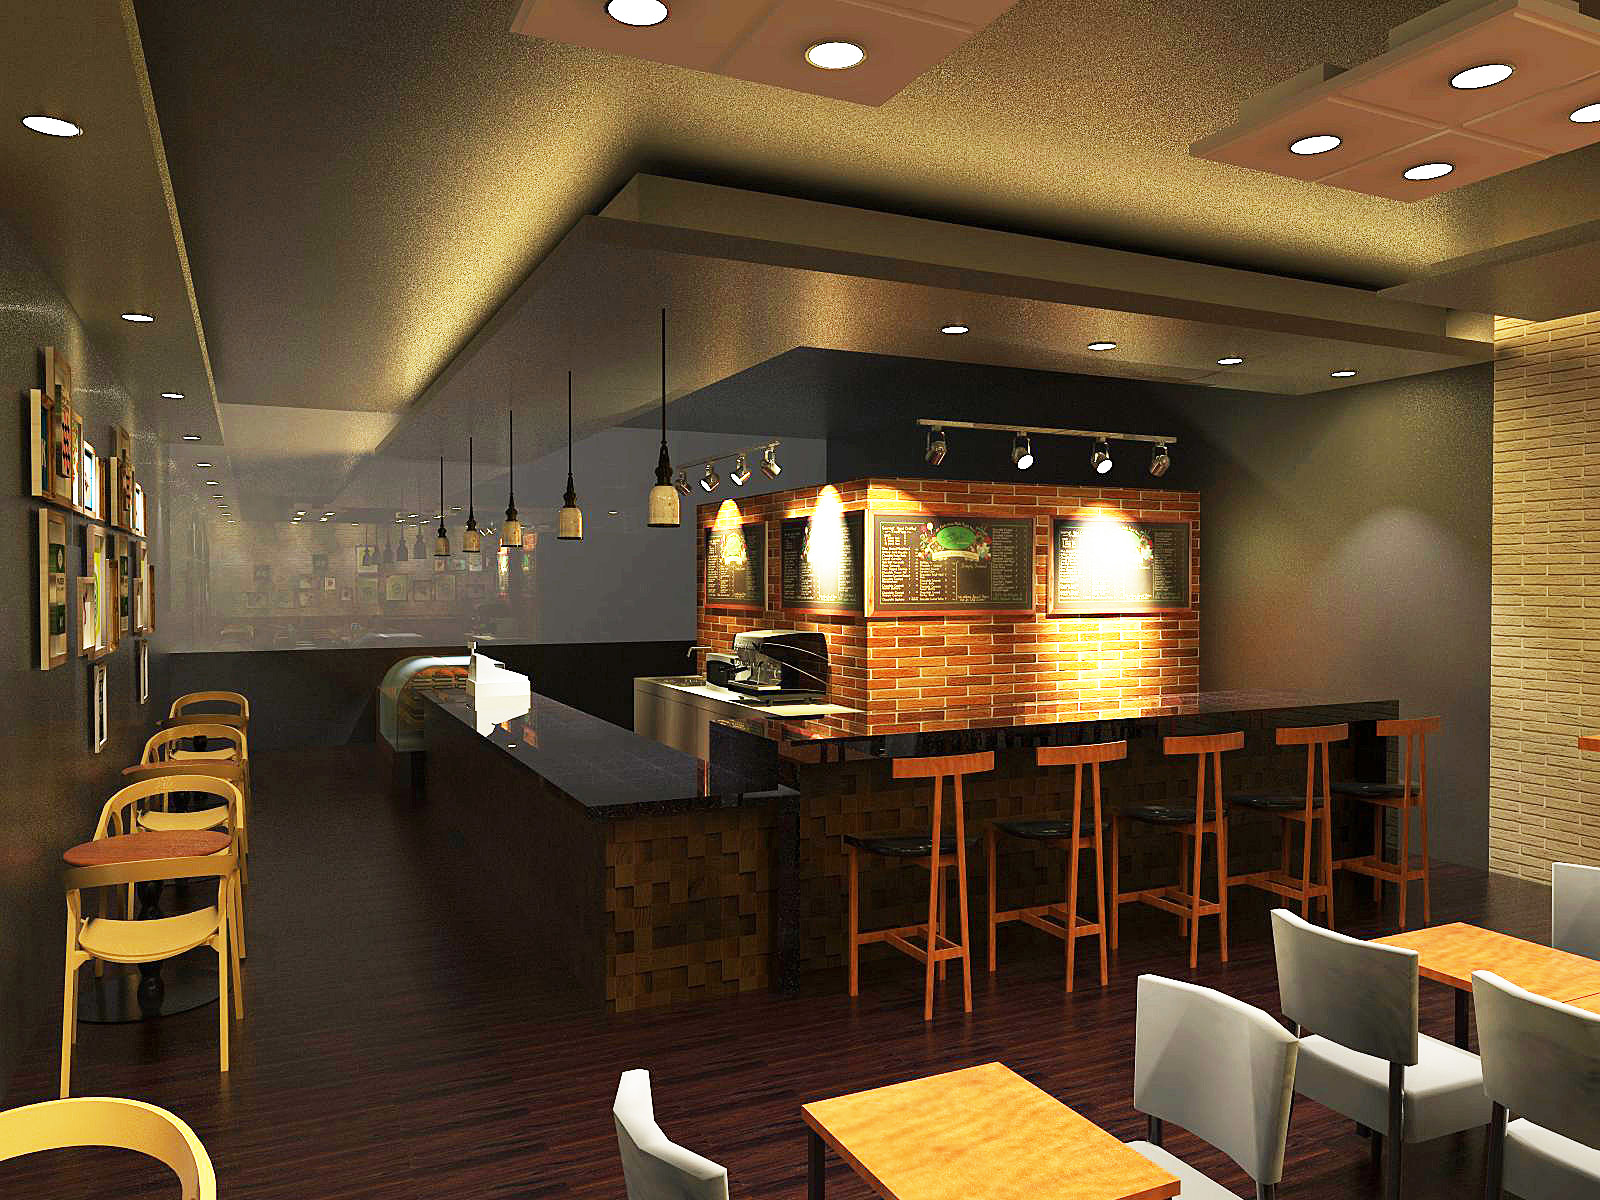 Here Is The 3d Drawing For Cafe Tp My Client Told Me They Wqant Something Look Like Starbuck